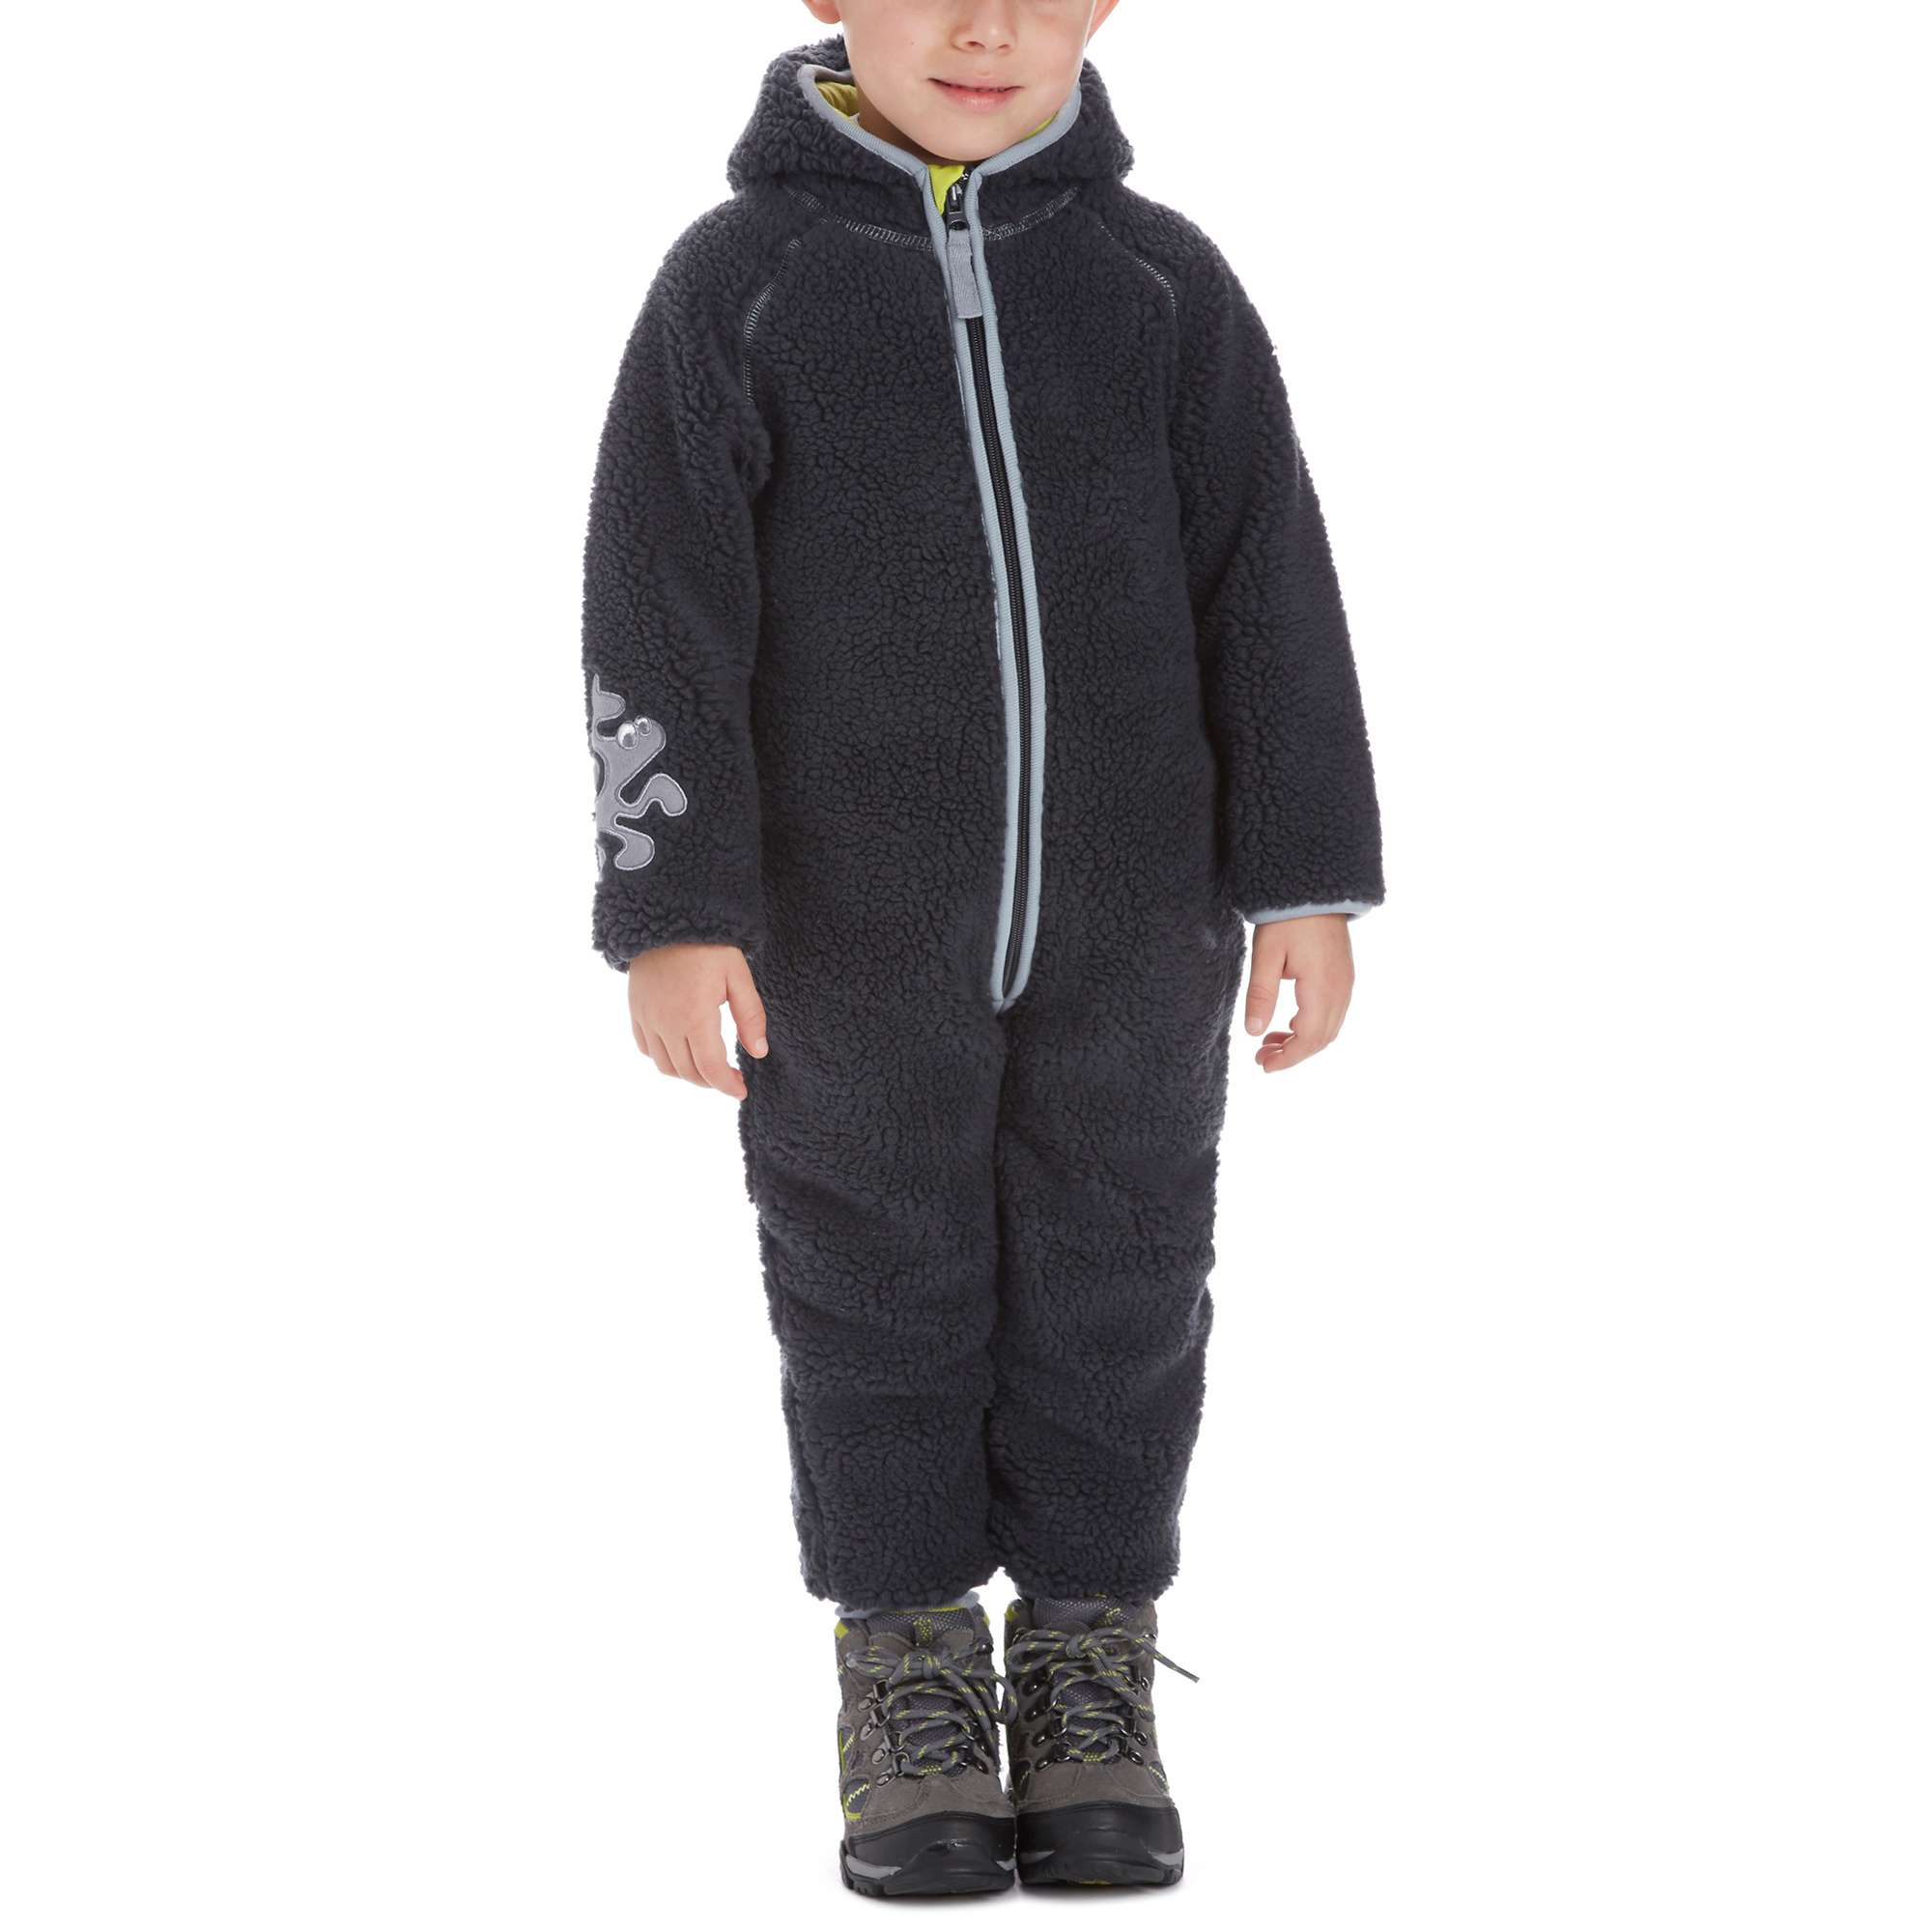 KOZI KIDZ Boys' Nalle Softpile Fleece All in One